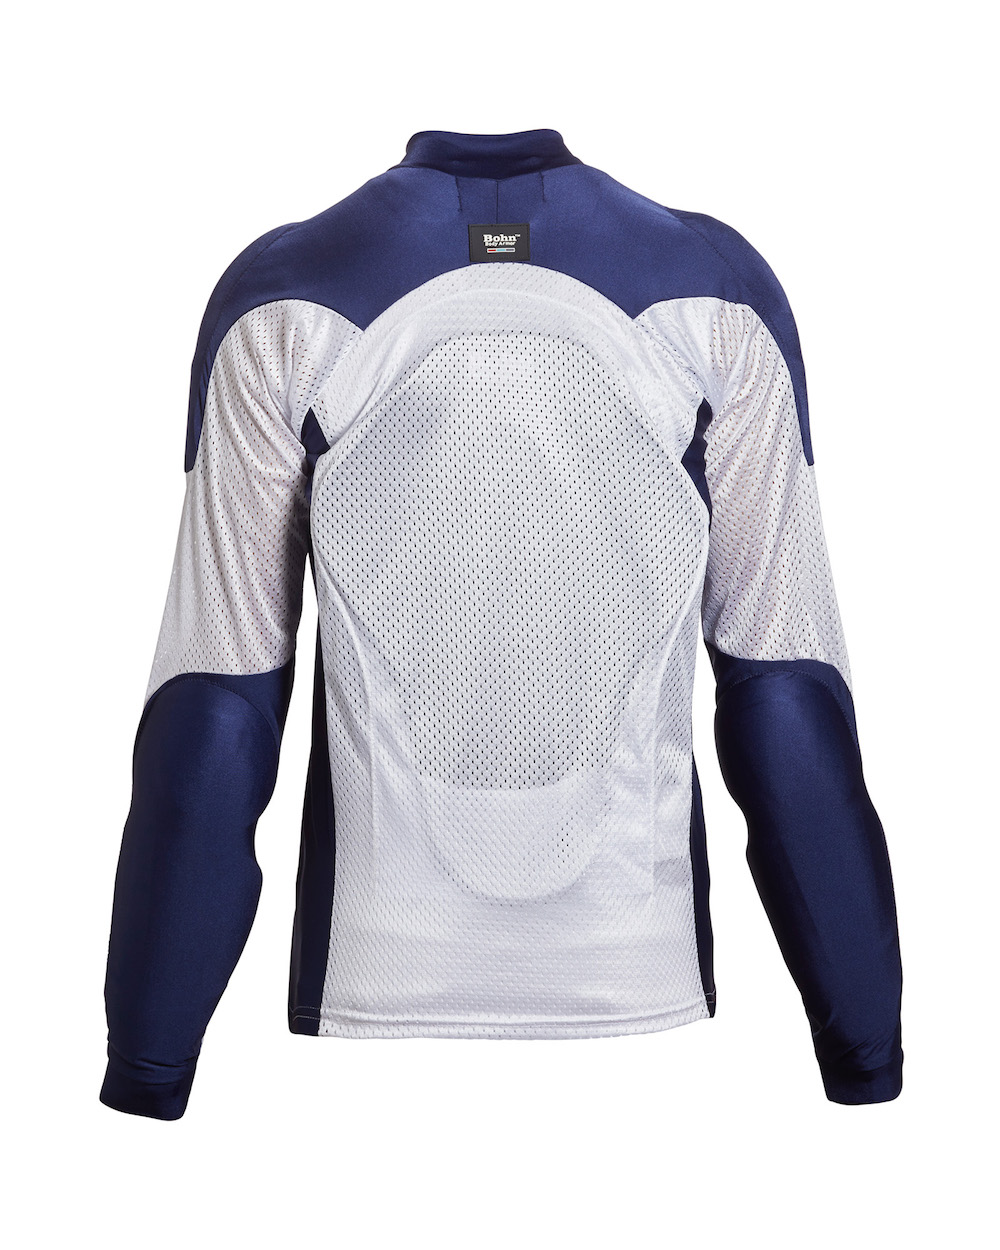 All season airtex armored riding shirt blue white for Motorcycle body armor shirt